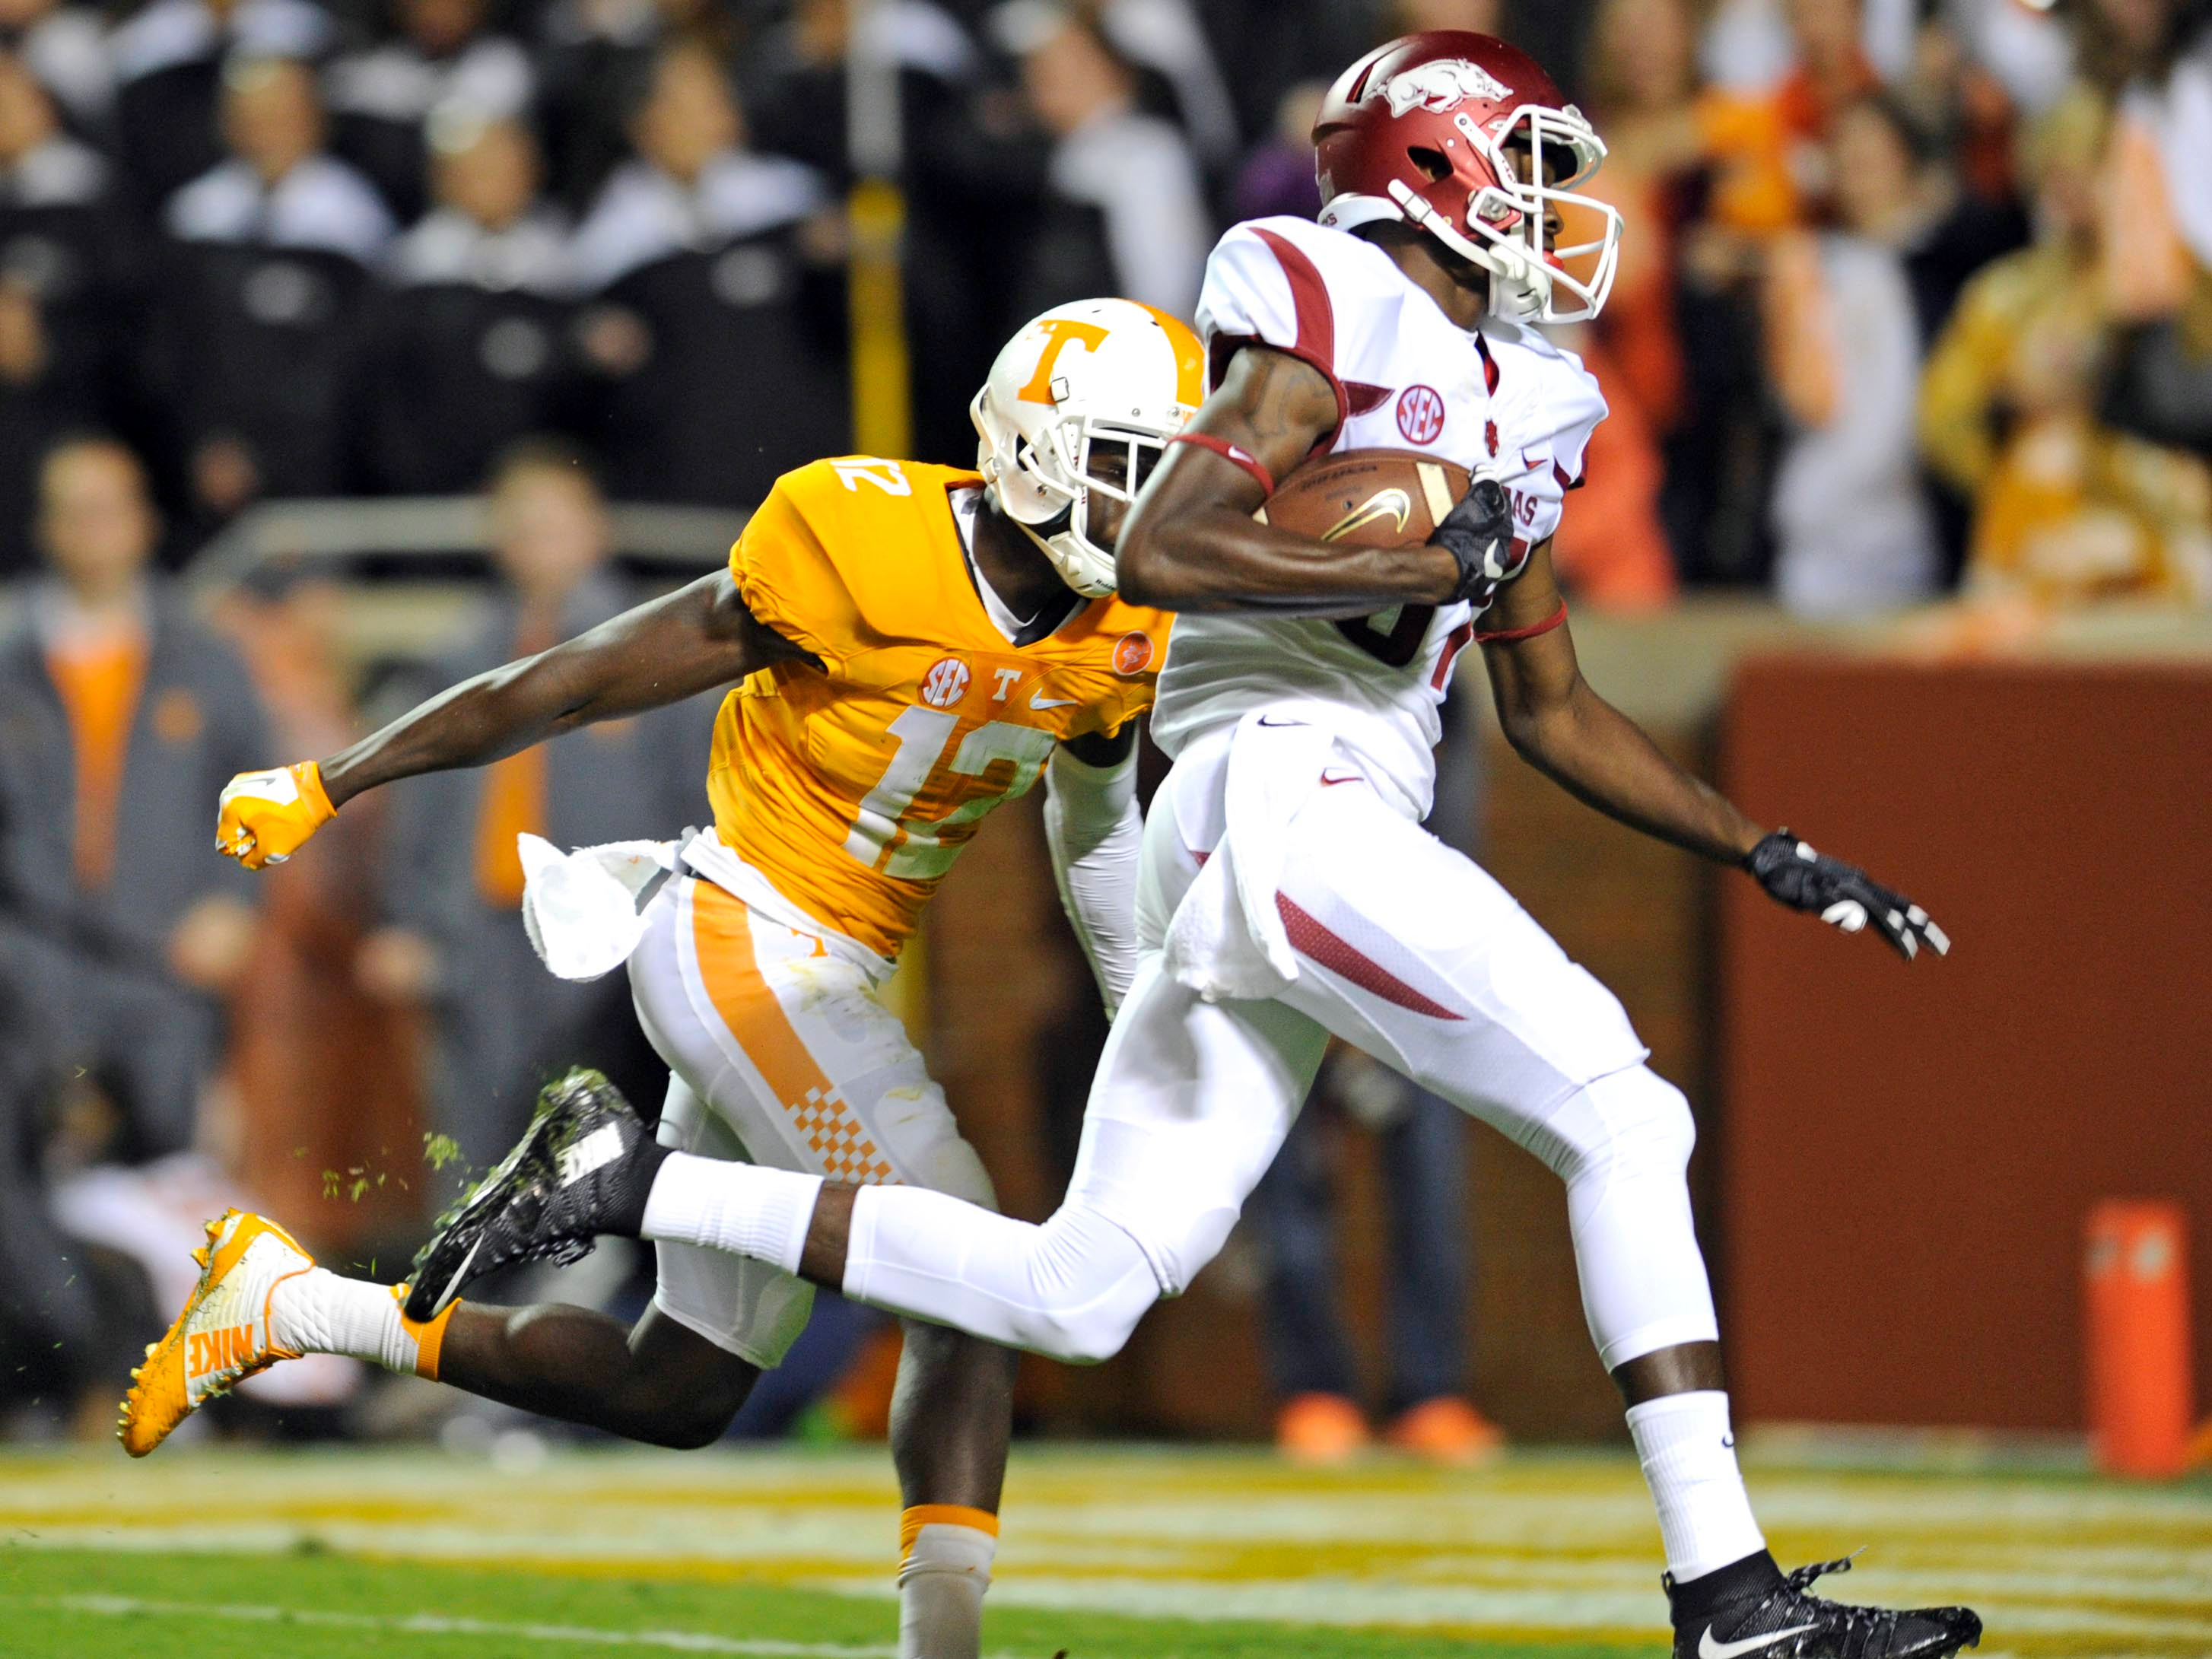 Arkansas wide receiver Dominique Reed (87) scores a touchdown past Tennessee defensive back Emmanuel Moseley (12), tying the score  during the first half of an NCAA college football game at Neyland Stadium in Knoxville, Tenn. on Saturday, Oct. 3, 2015. (A